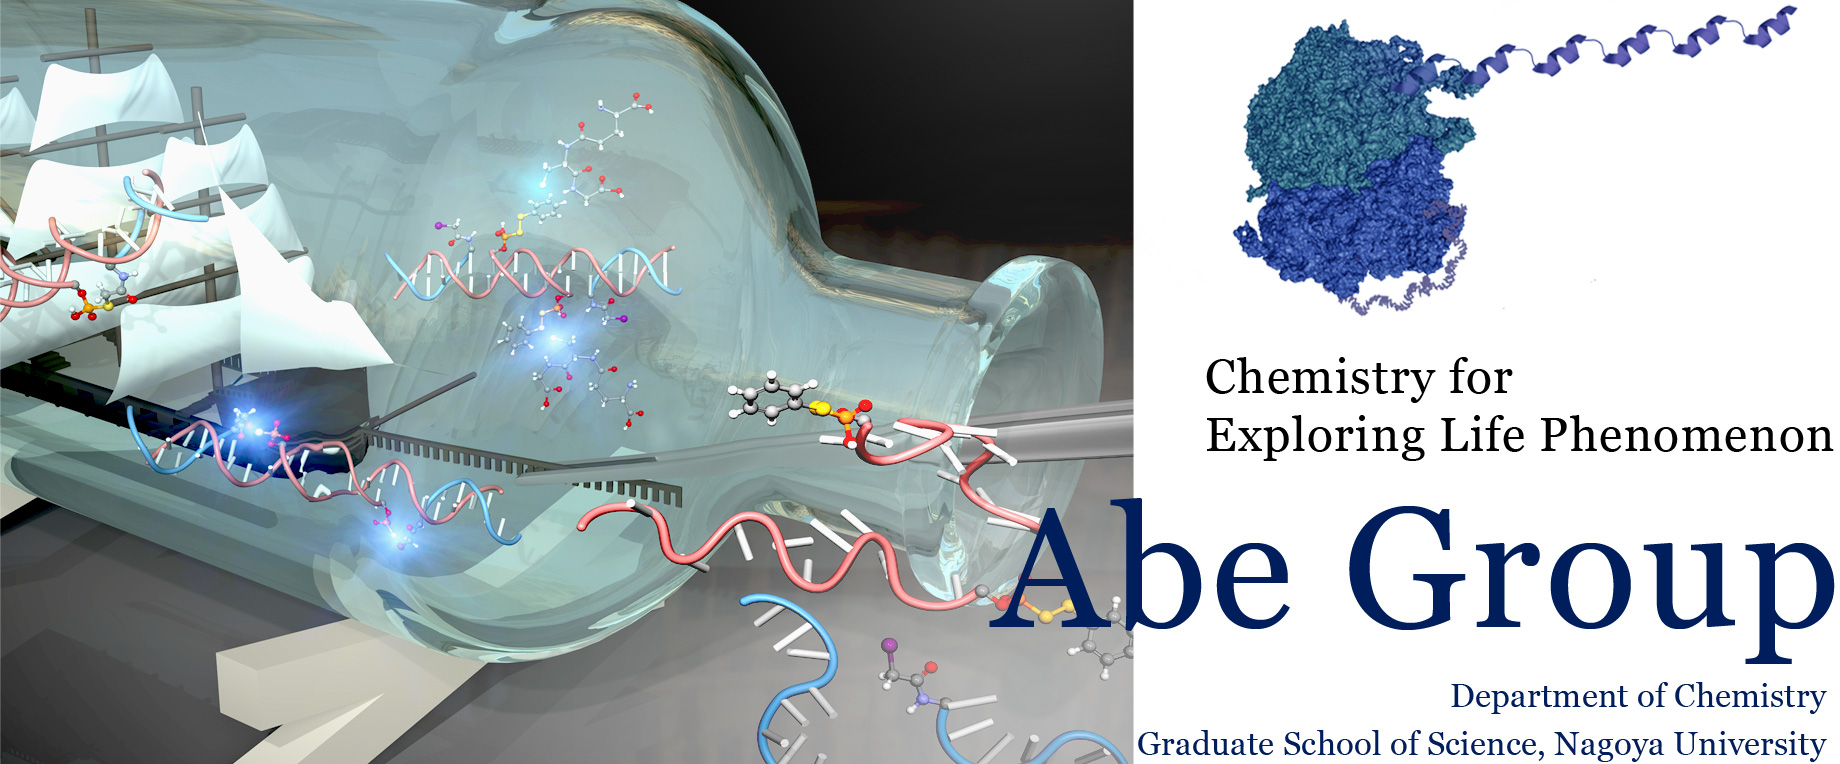 Chemistry for Exploring Life Phenomenon, Abe Group, Department of Chemistry, Graduate School of Science, Nagoya University